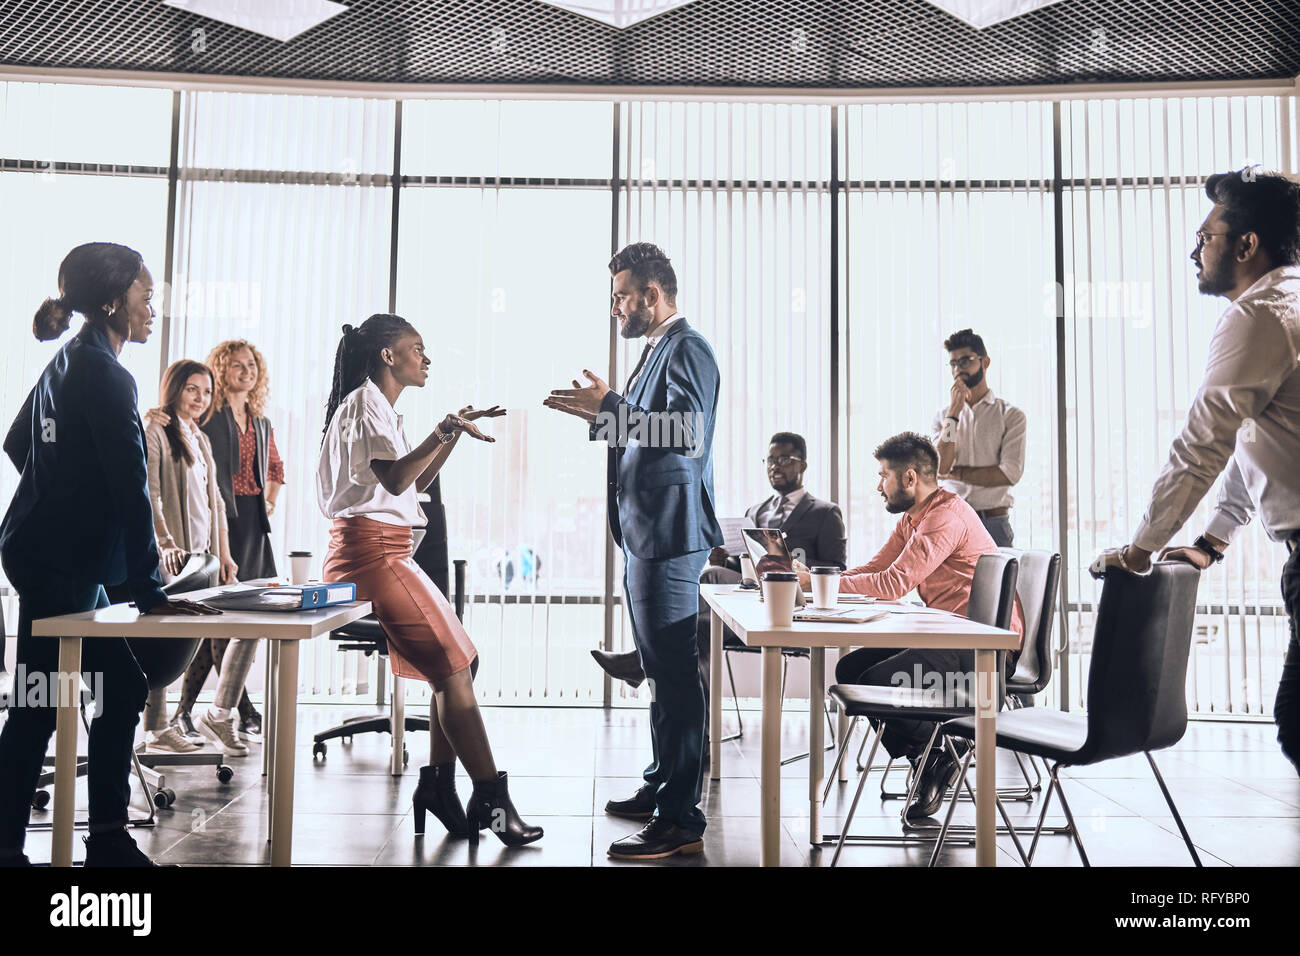 two employees are having a conflict . two views on the problem. Stock Photo